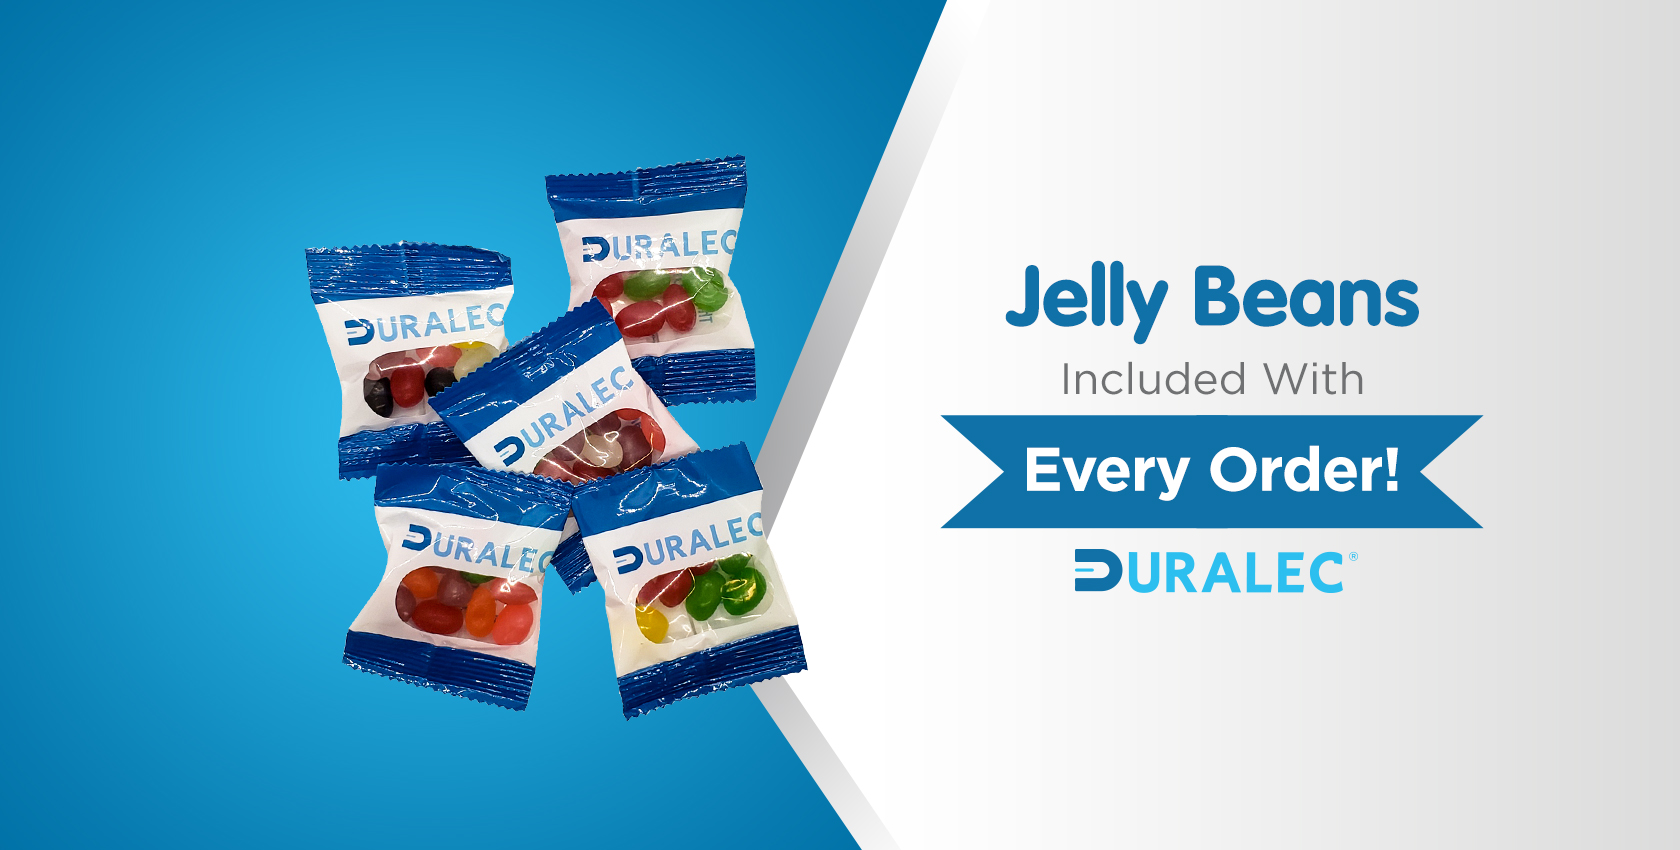 Free Jelly Beans with Every Purchase!